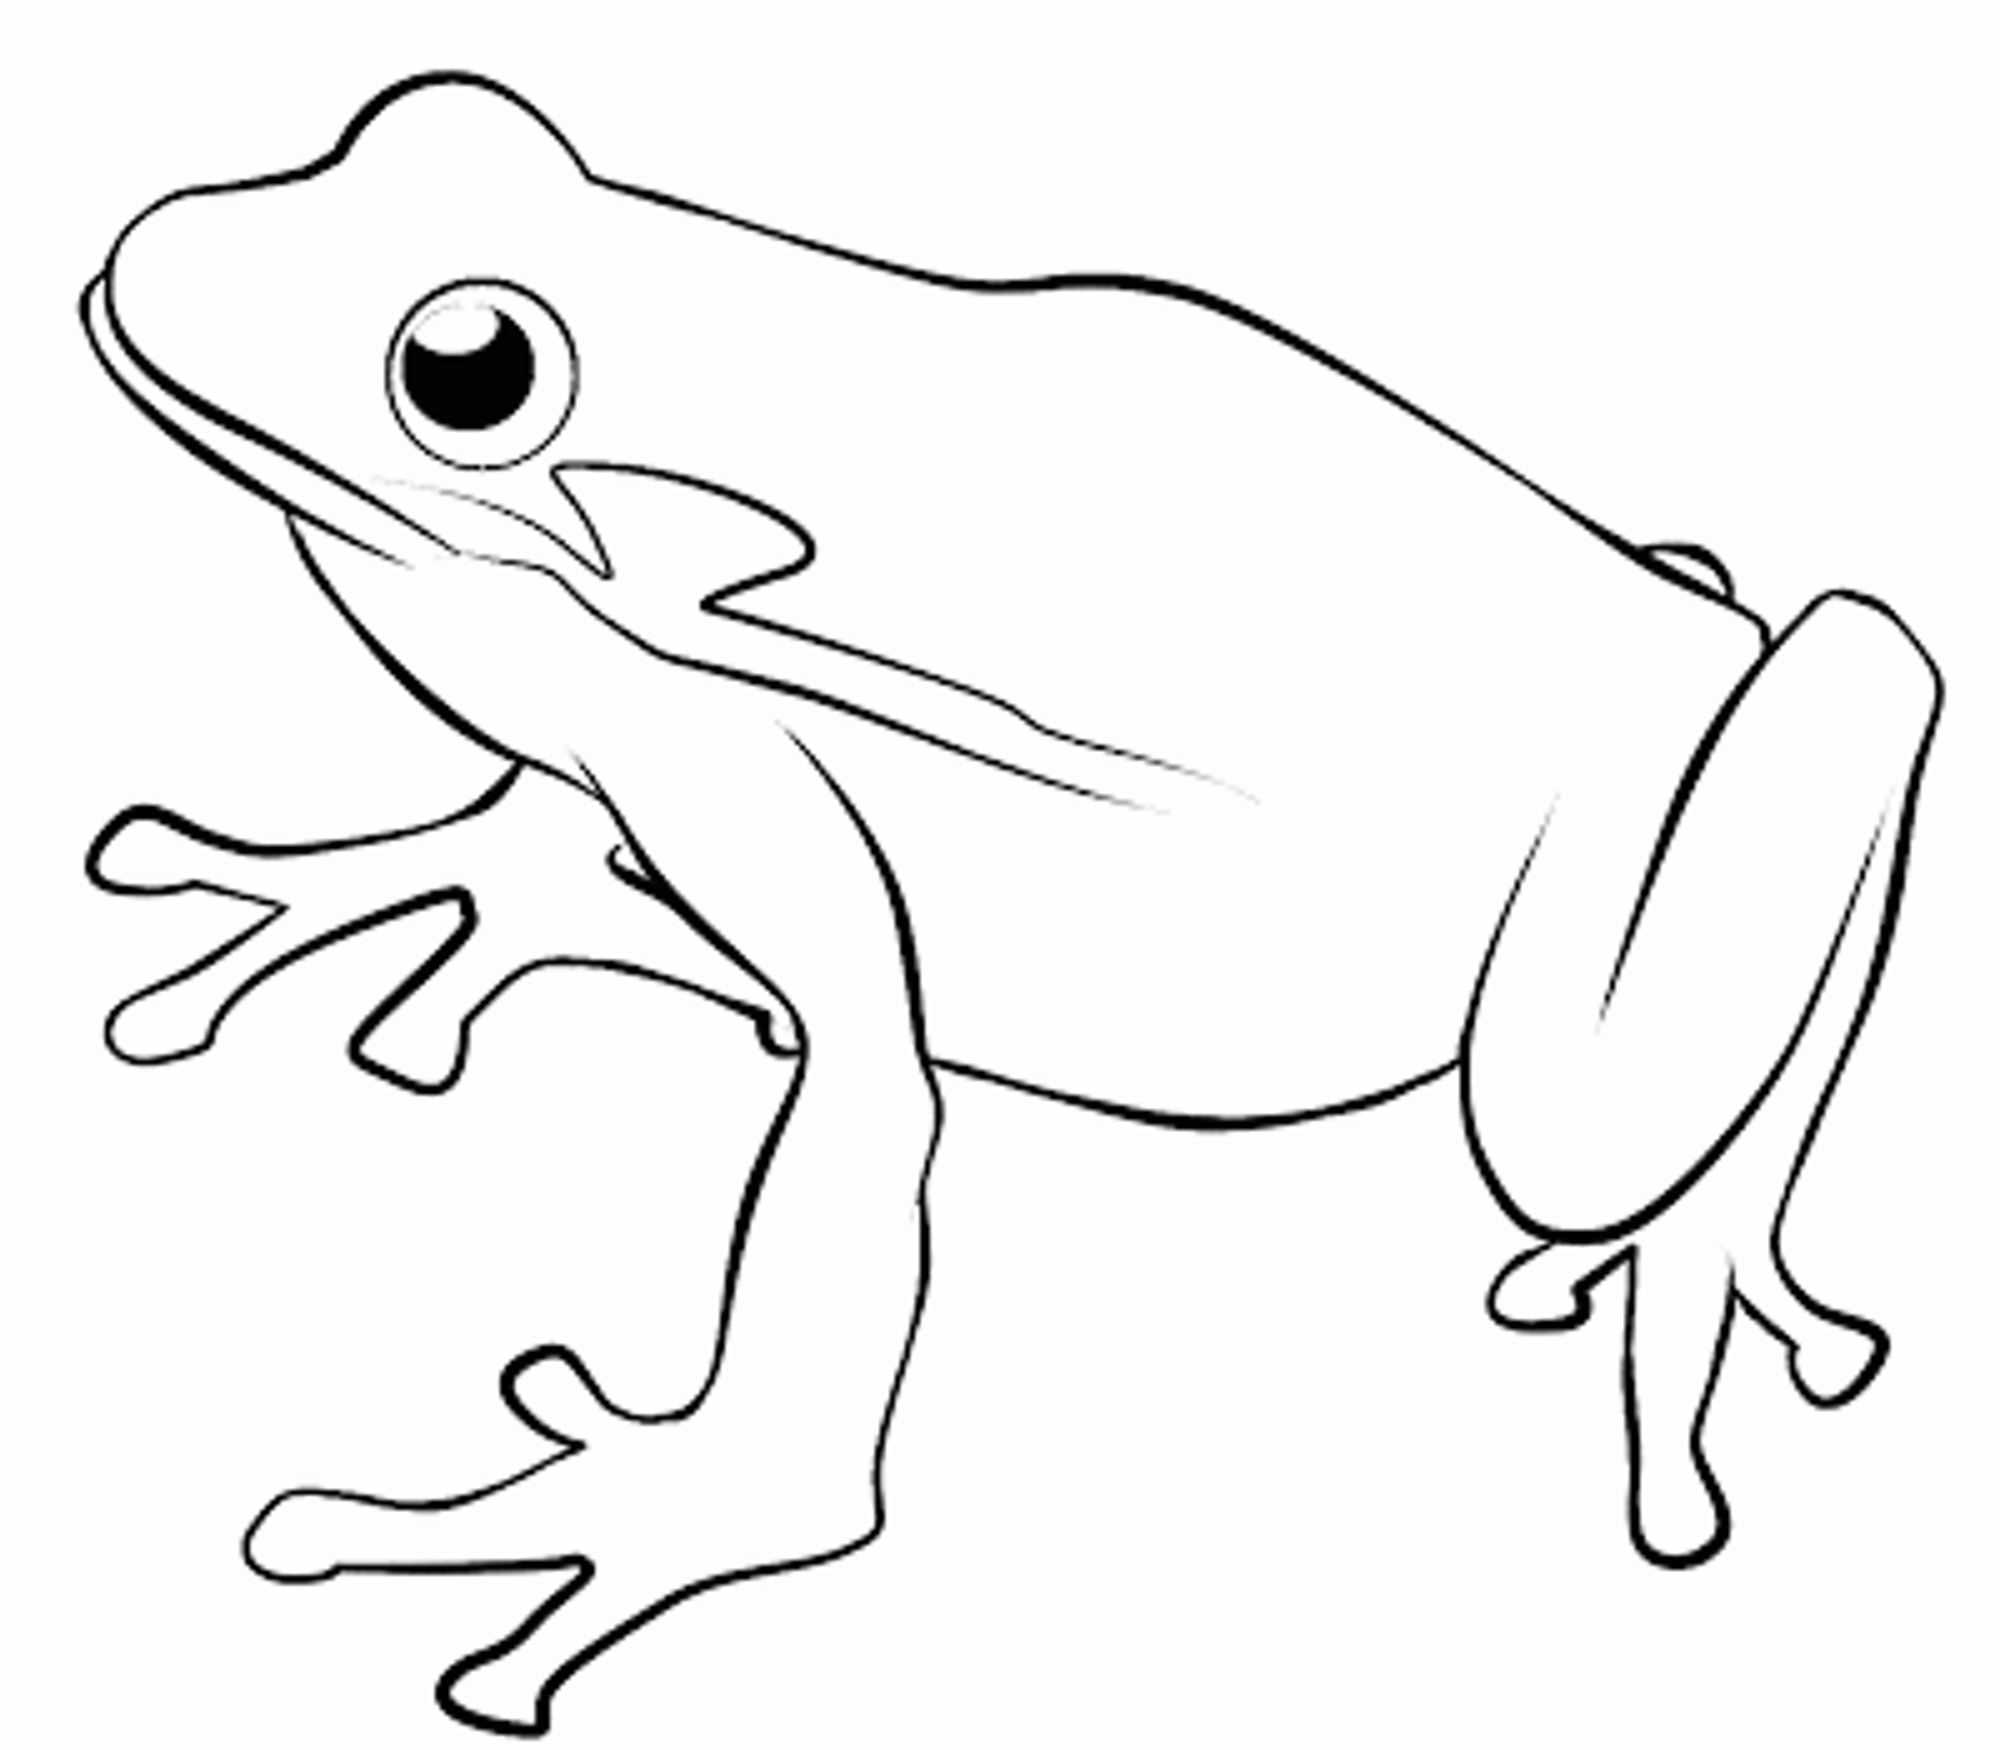 frog coloring pages for kids BestAppsForKidscom